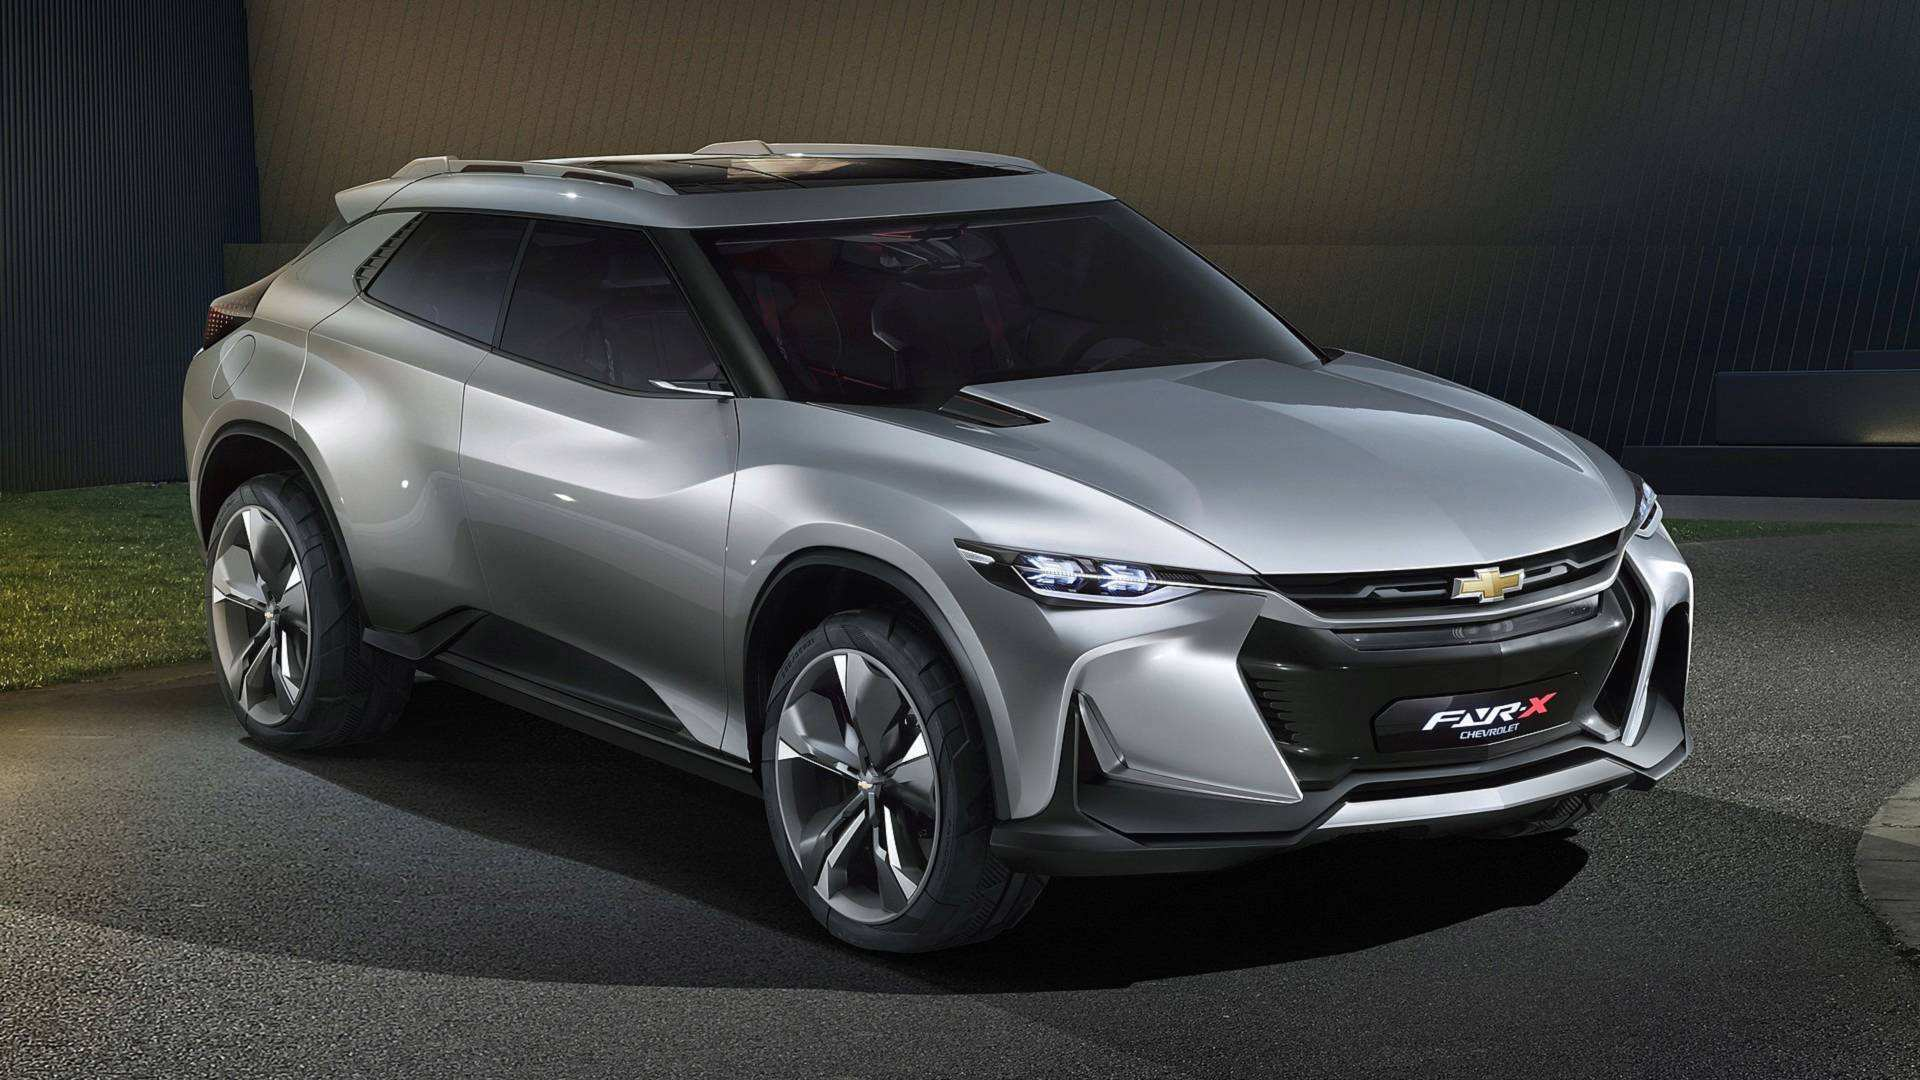 69 All New Chevrolet Models 2020 Reviews for Chevrolet Models 2020